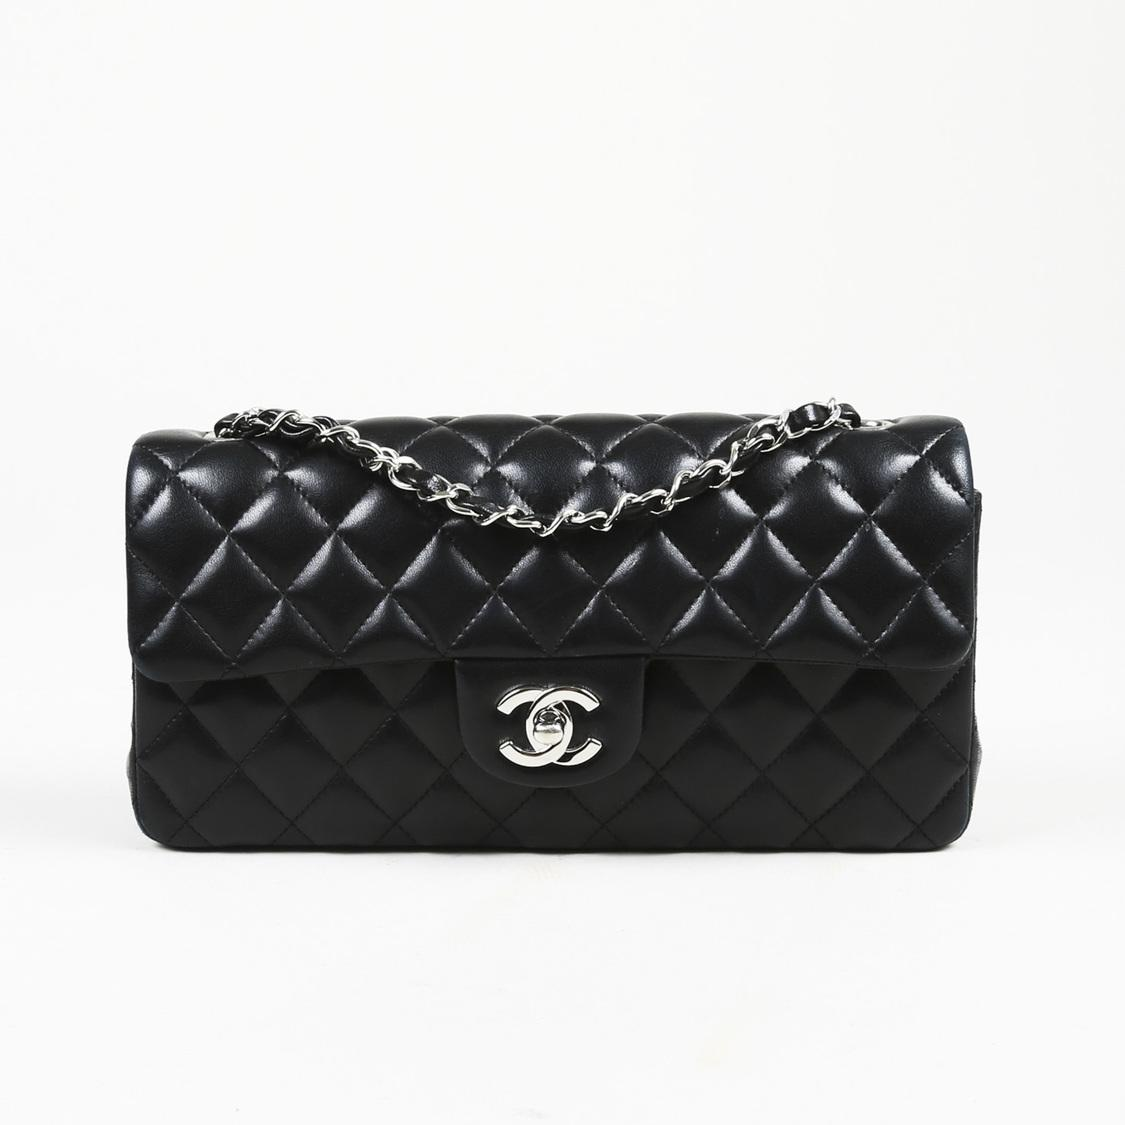 83a74259d6f3 Lyst - Chanel